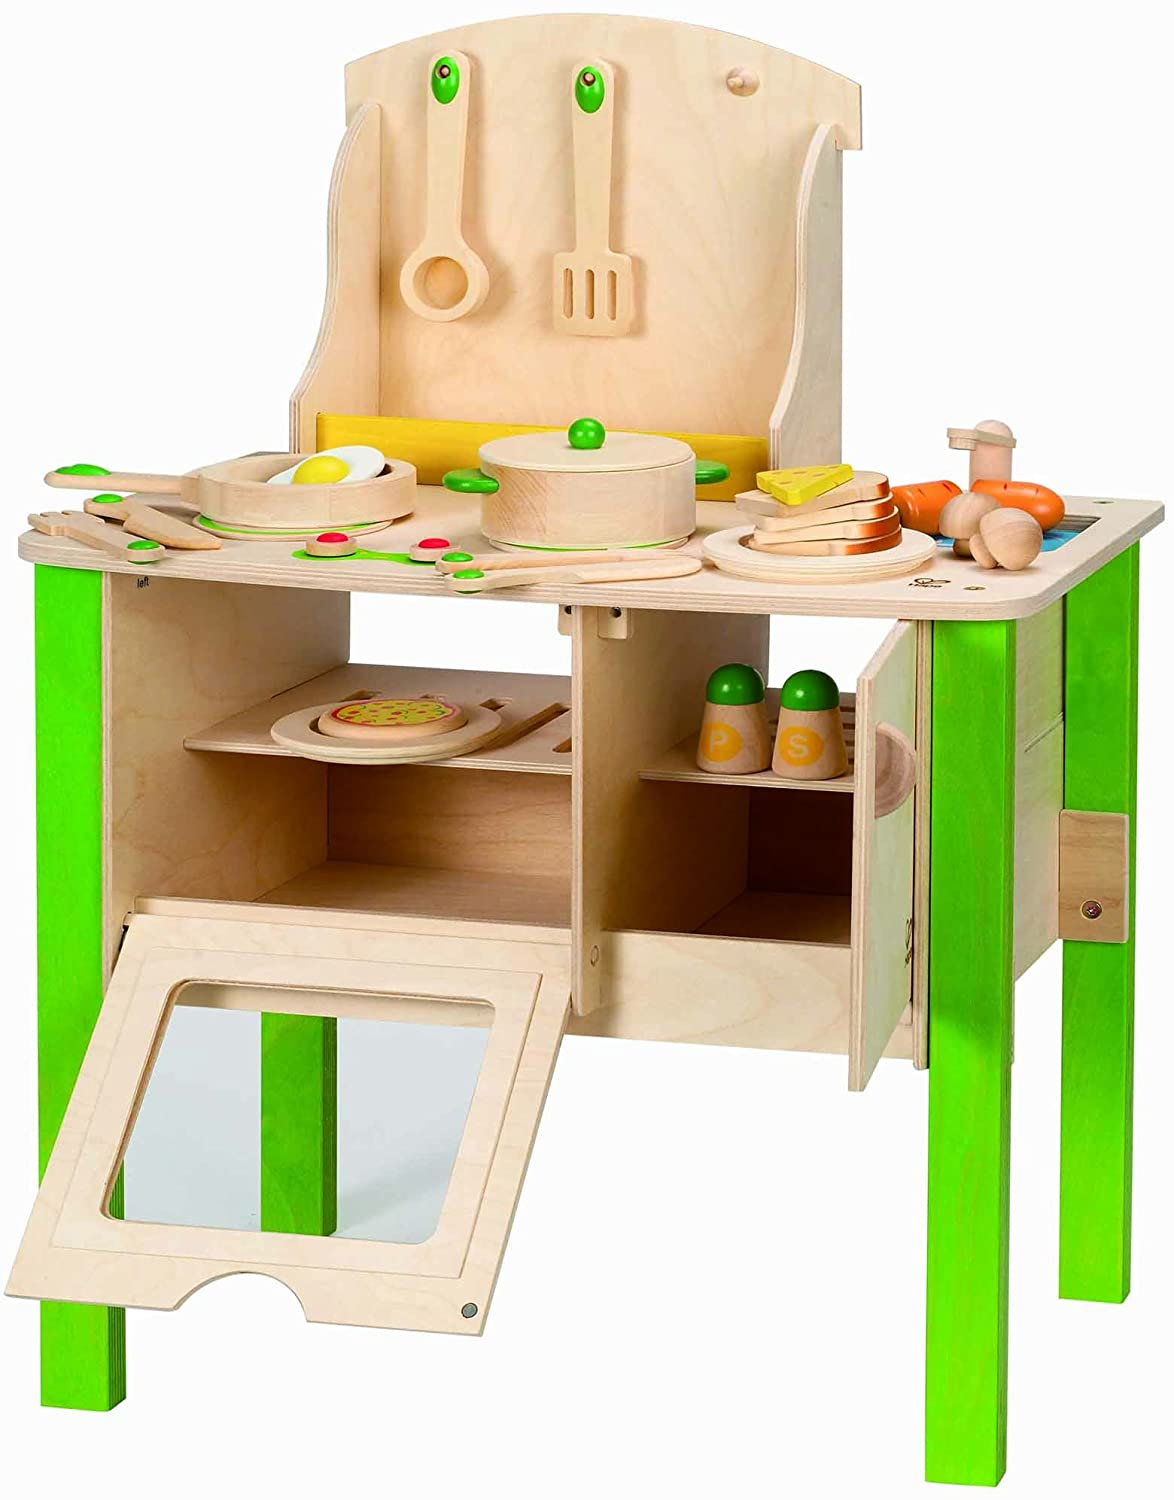 Play Kitchen Amazoncom Hape My Creative Cookery Club Kids Wooden Play